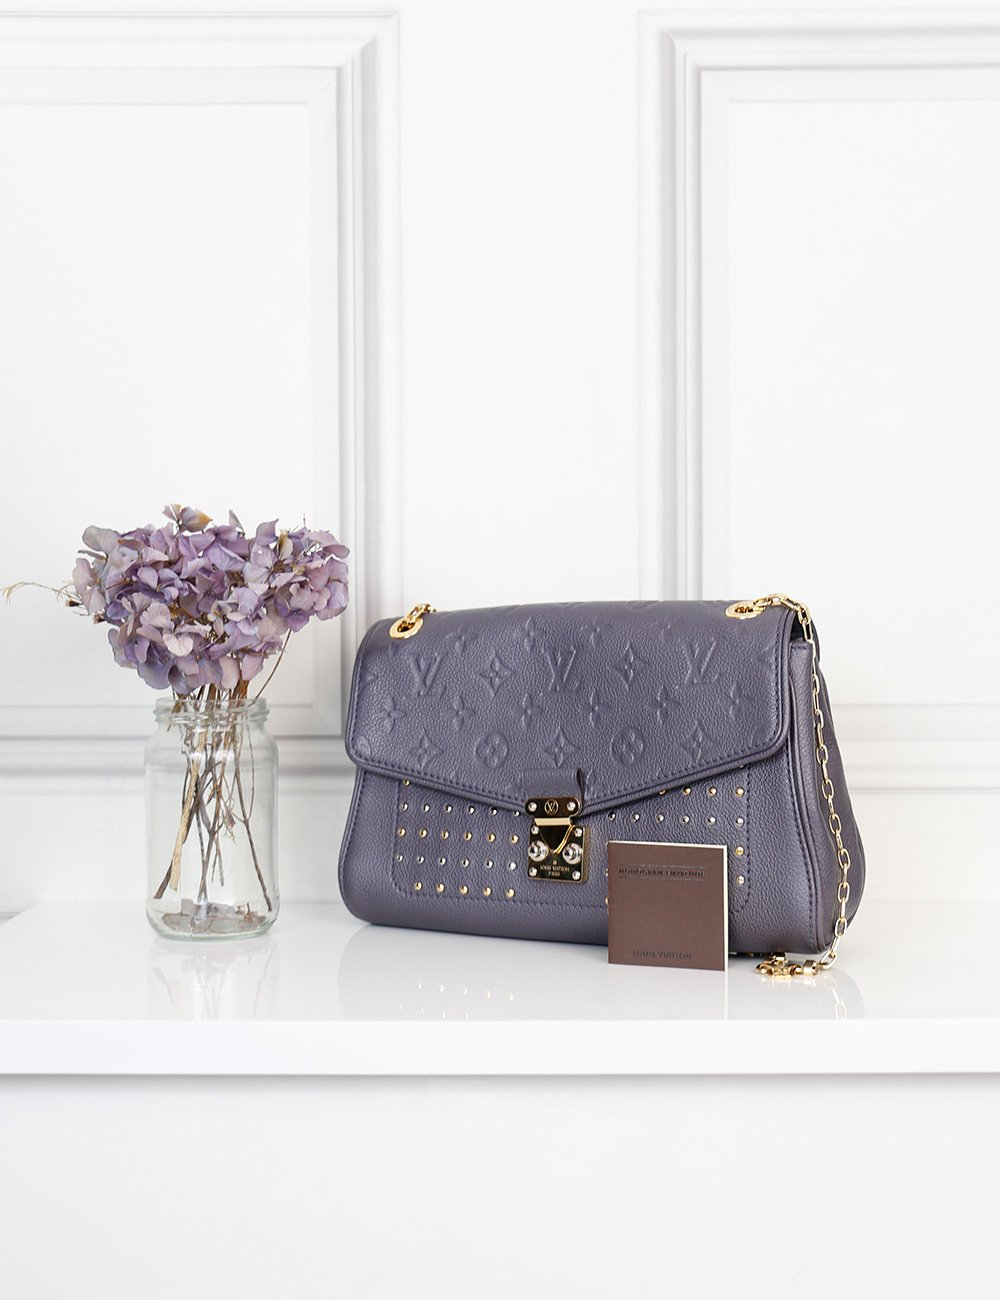 Louis Vuitton St Germain pm grey studded bag- My Wardrobe Mistakes